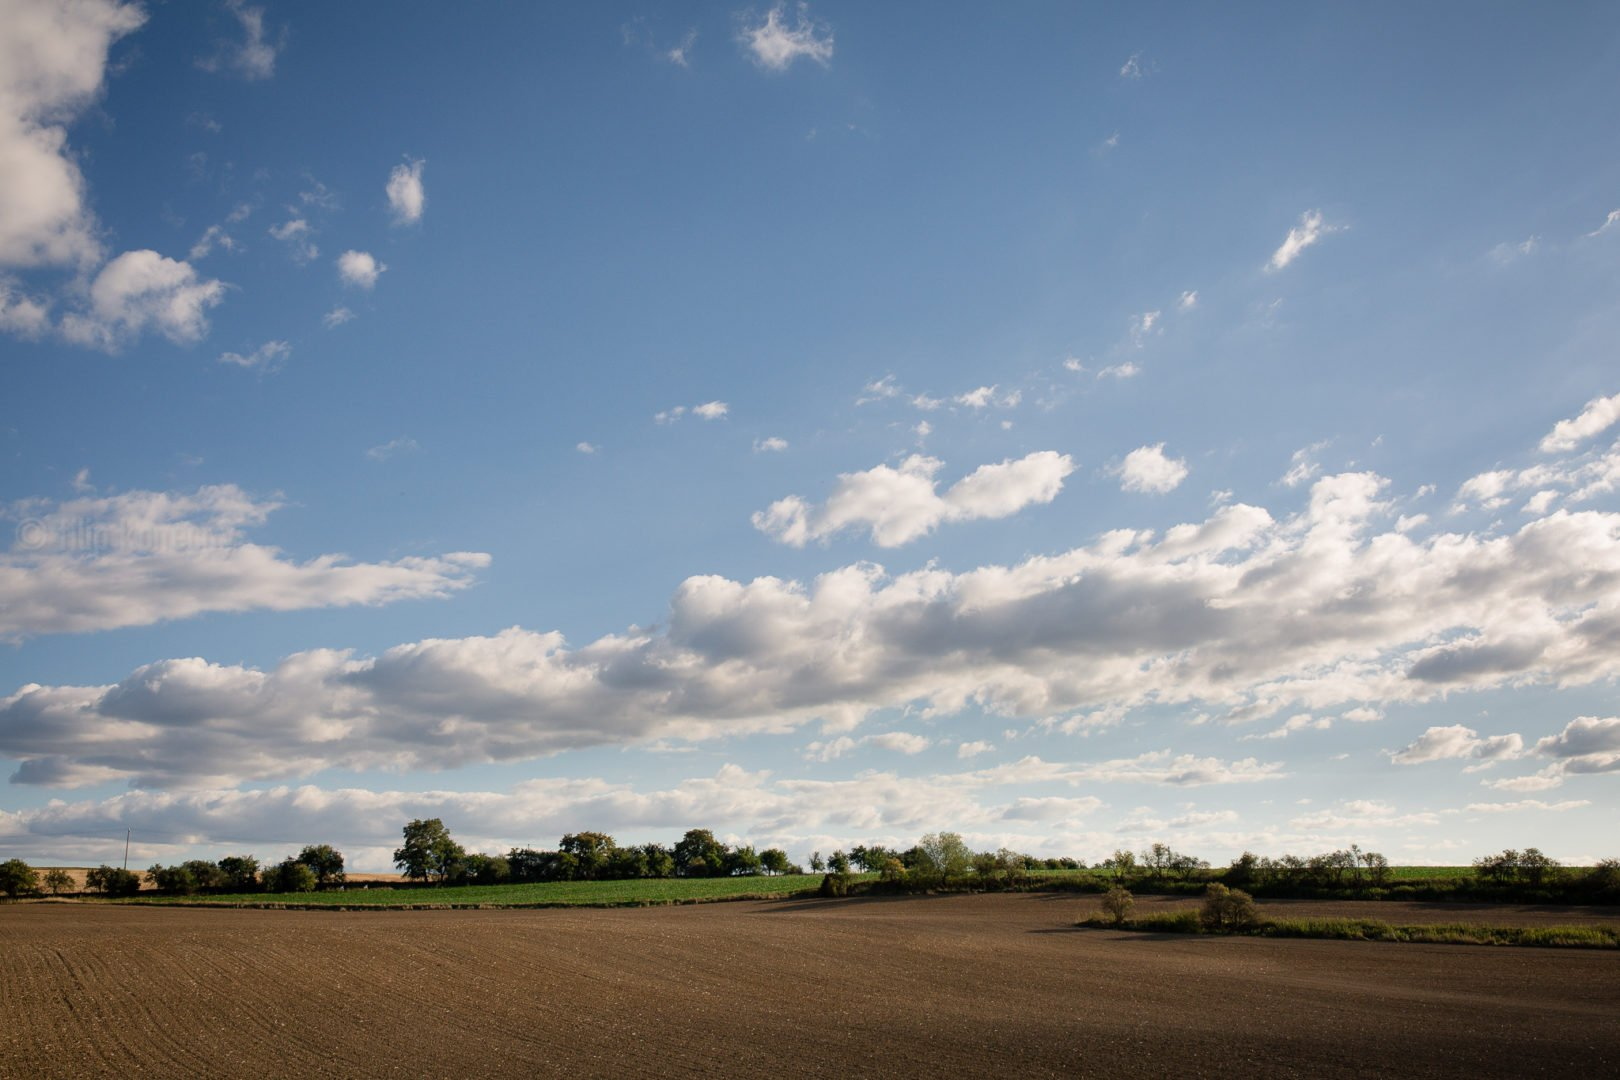 another angle of crop field landscape